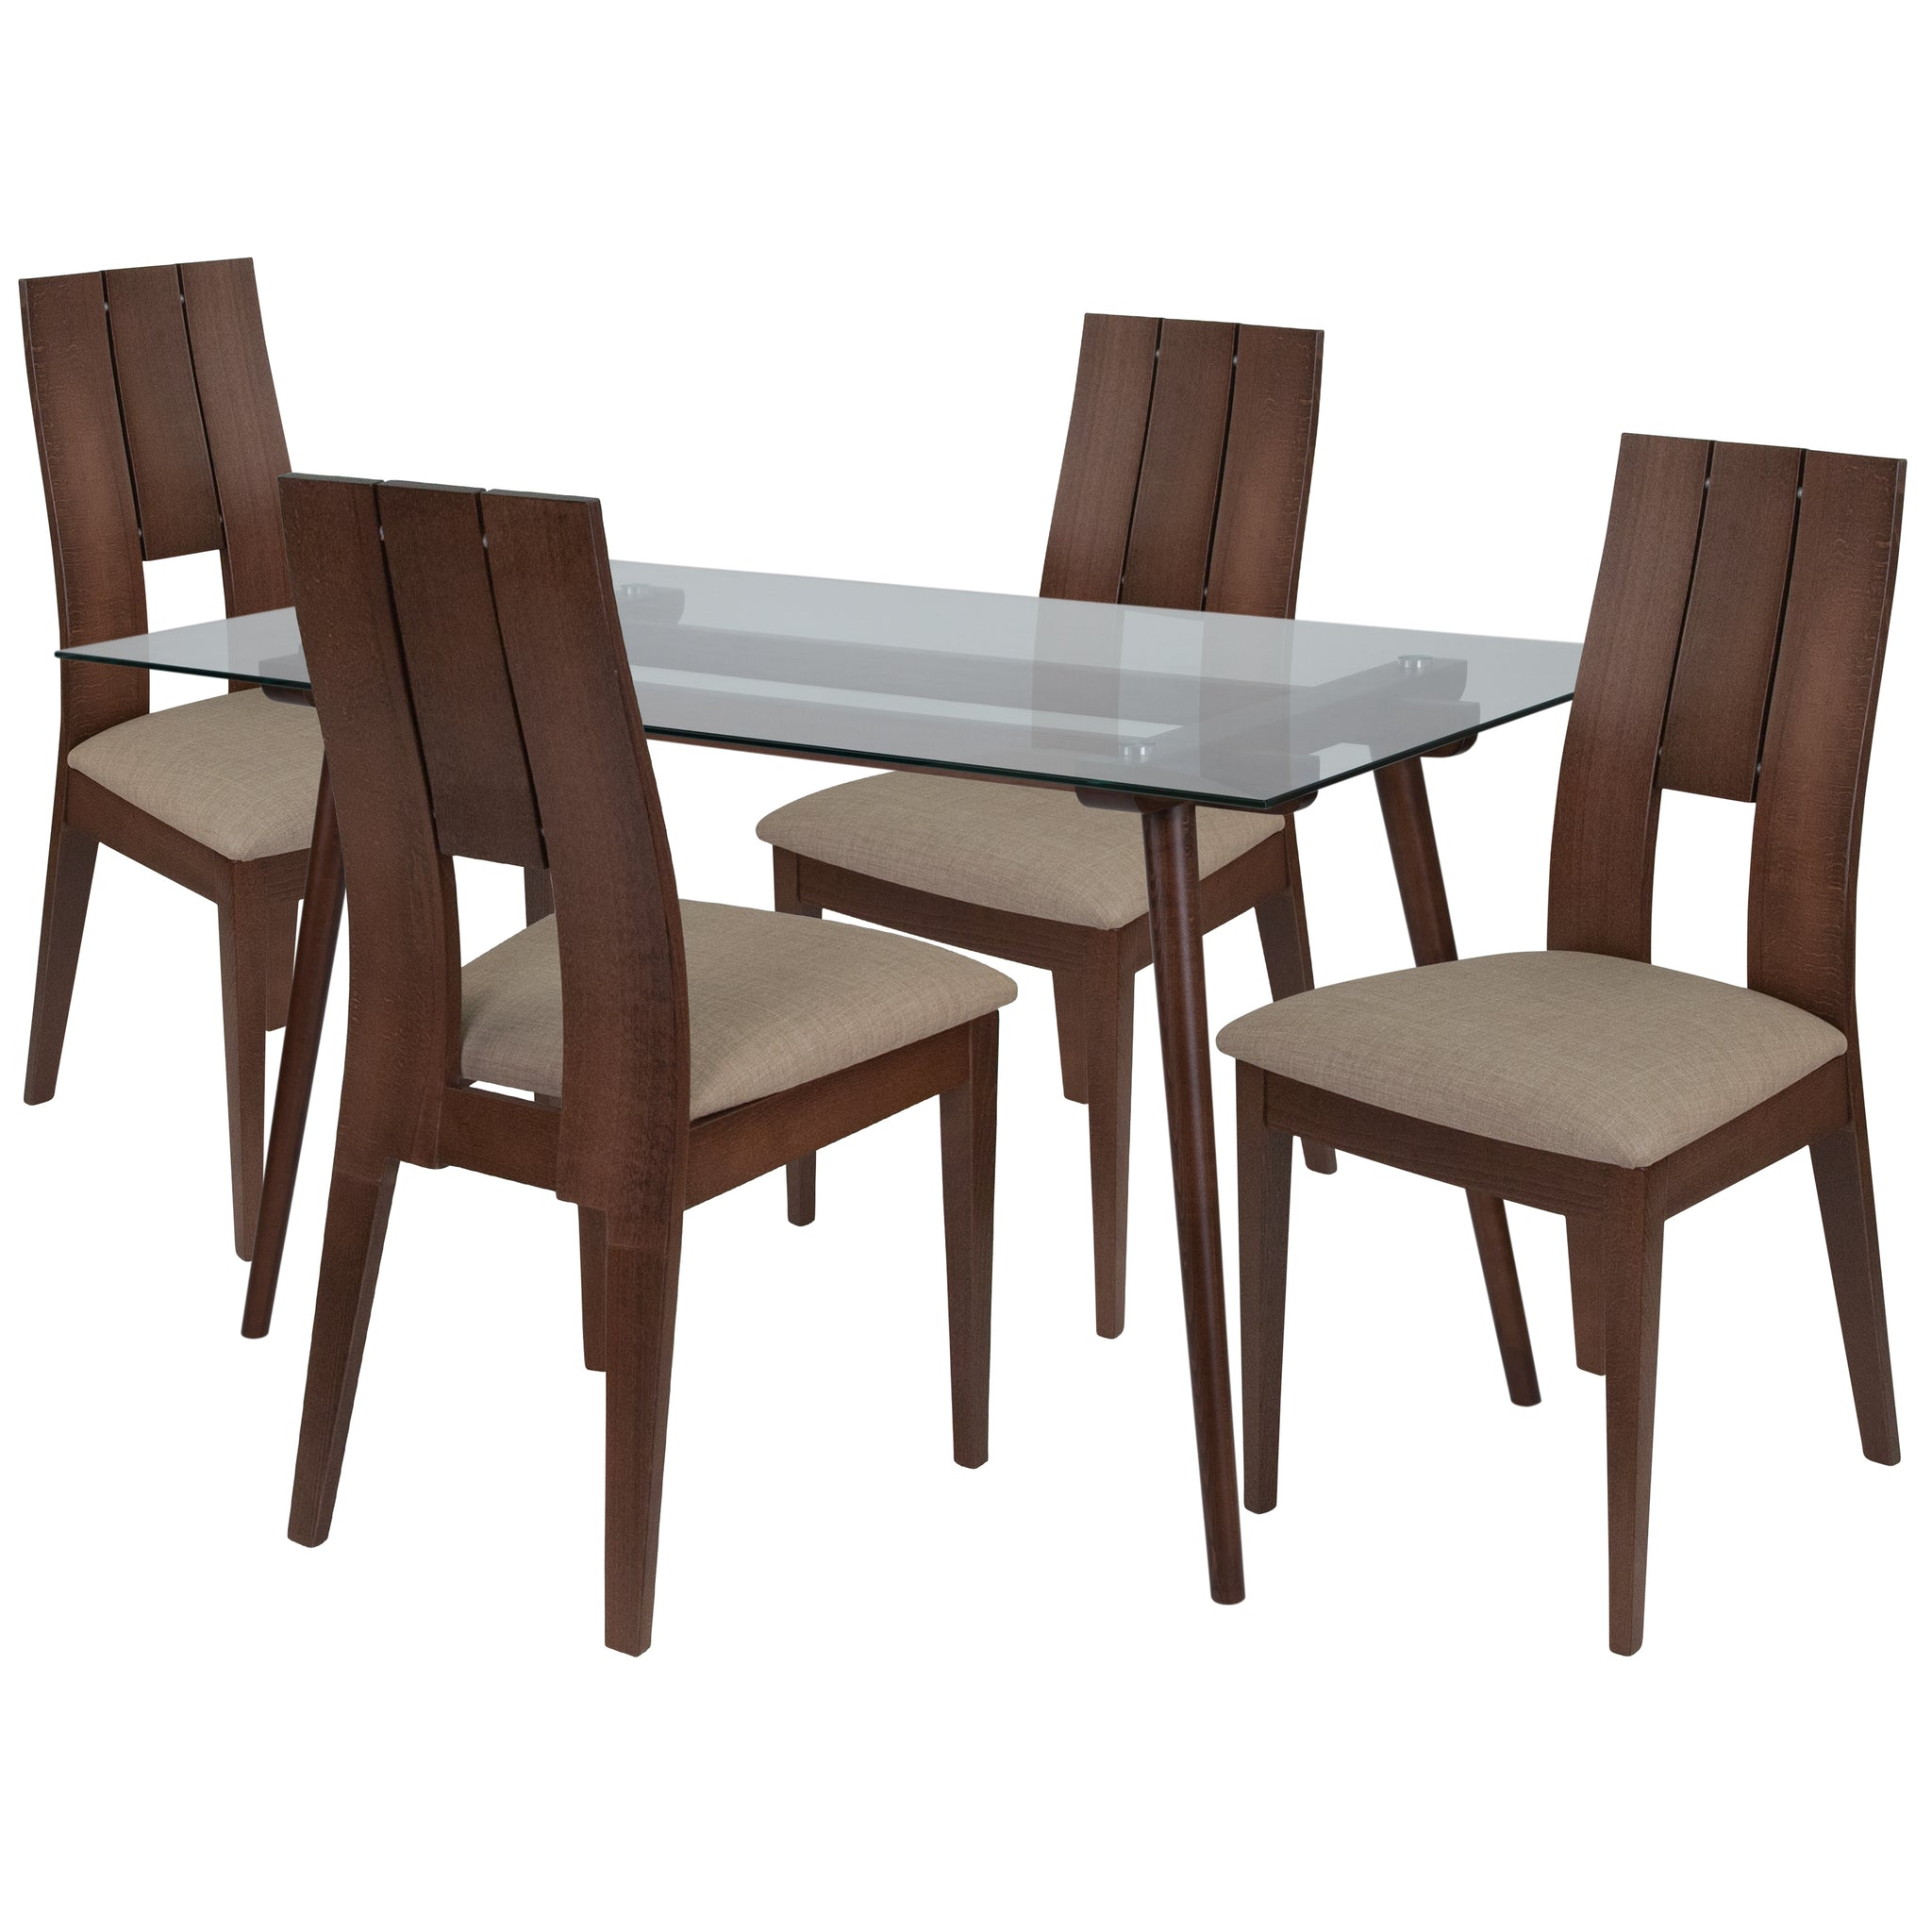 Carson 5 Piece Walnut Wood Dining Table Set with Glass Top and Curved Slat Keyhole Back Wood Dining Chairs - Padded Seats